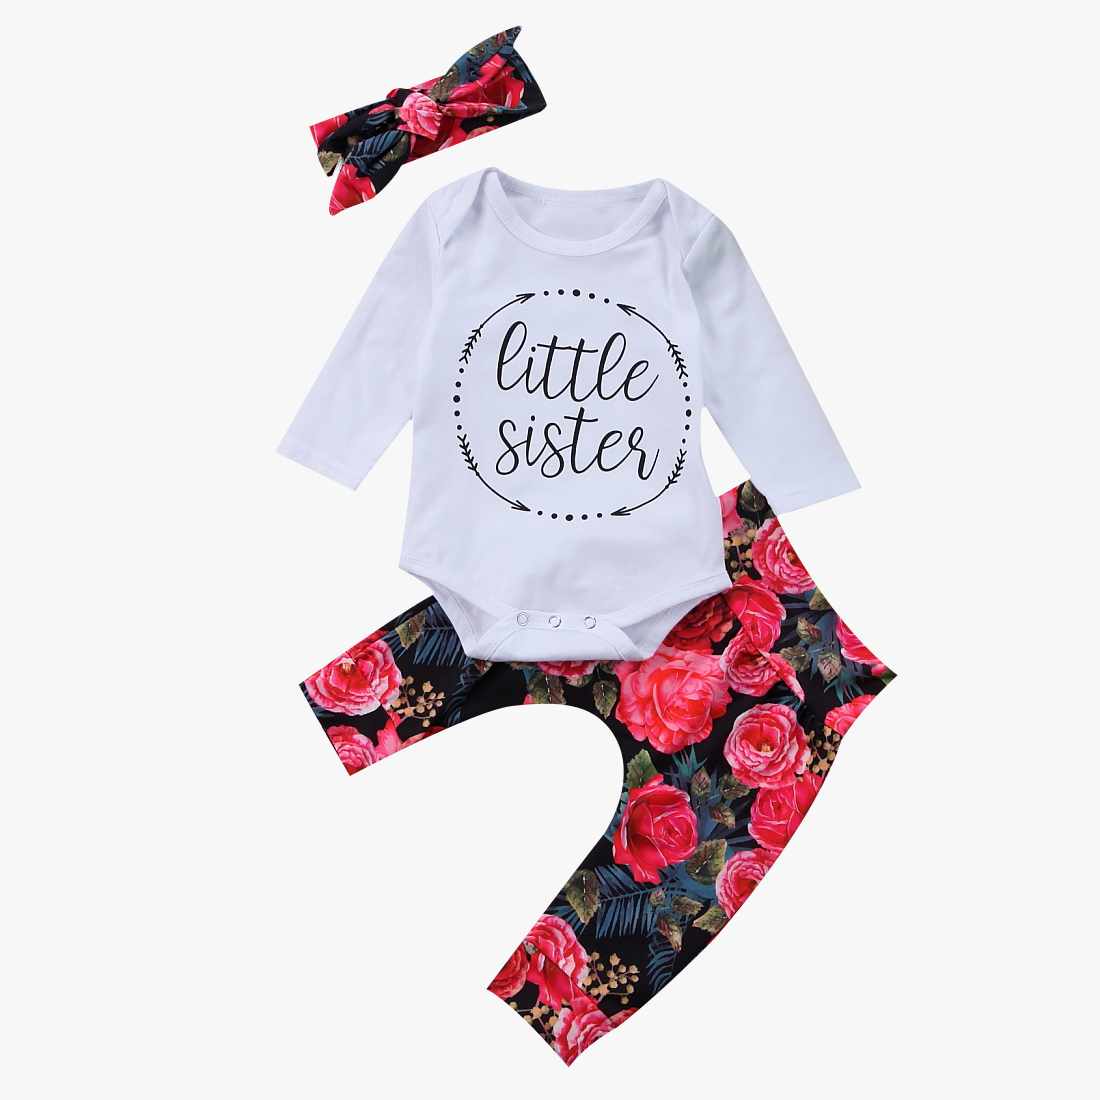 Cute Newborn Baby Girl Clothes Long Sleeve Tops Romper+Floral Pants+Headwear 3Pcs Outfits Cotton Casual Baby Sets